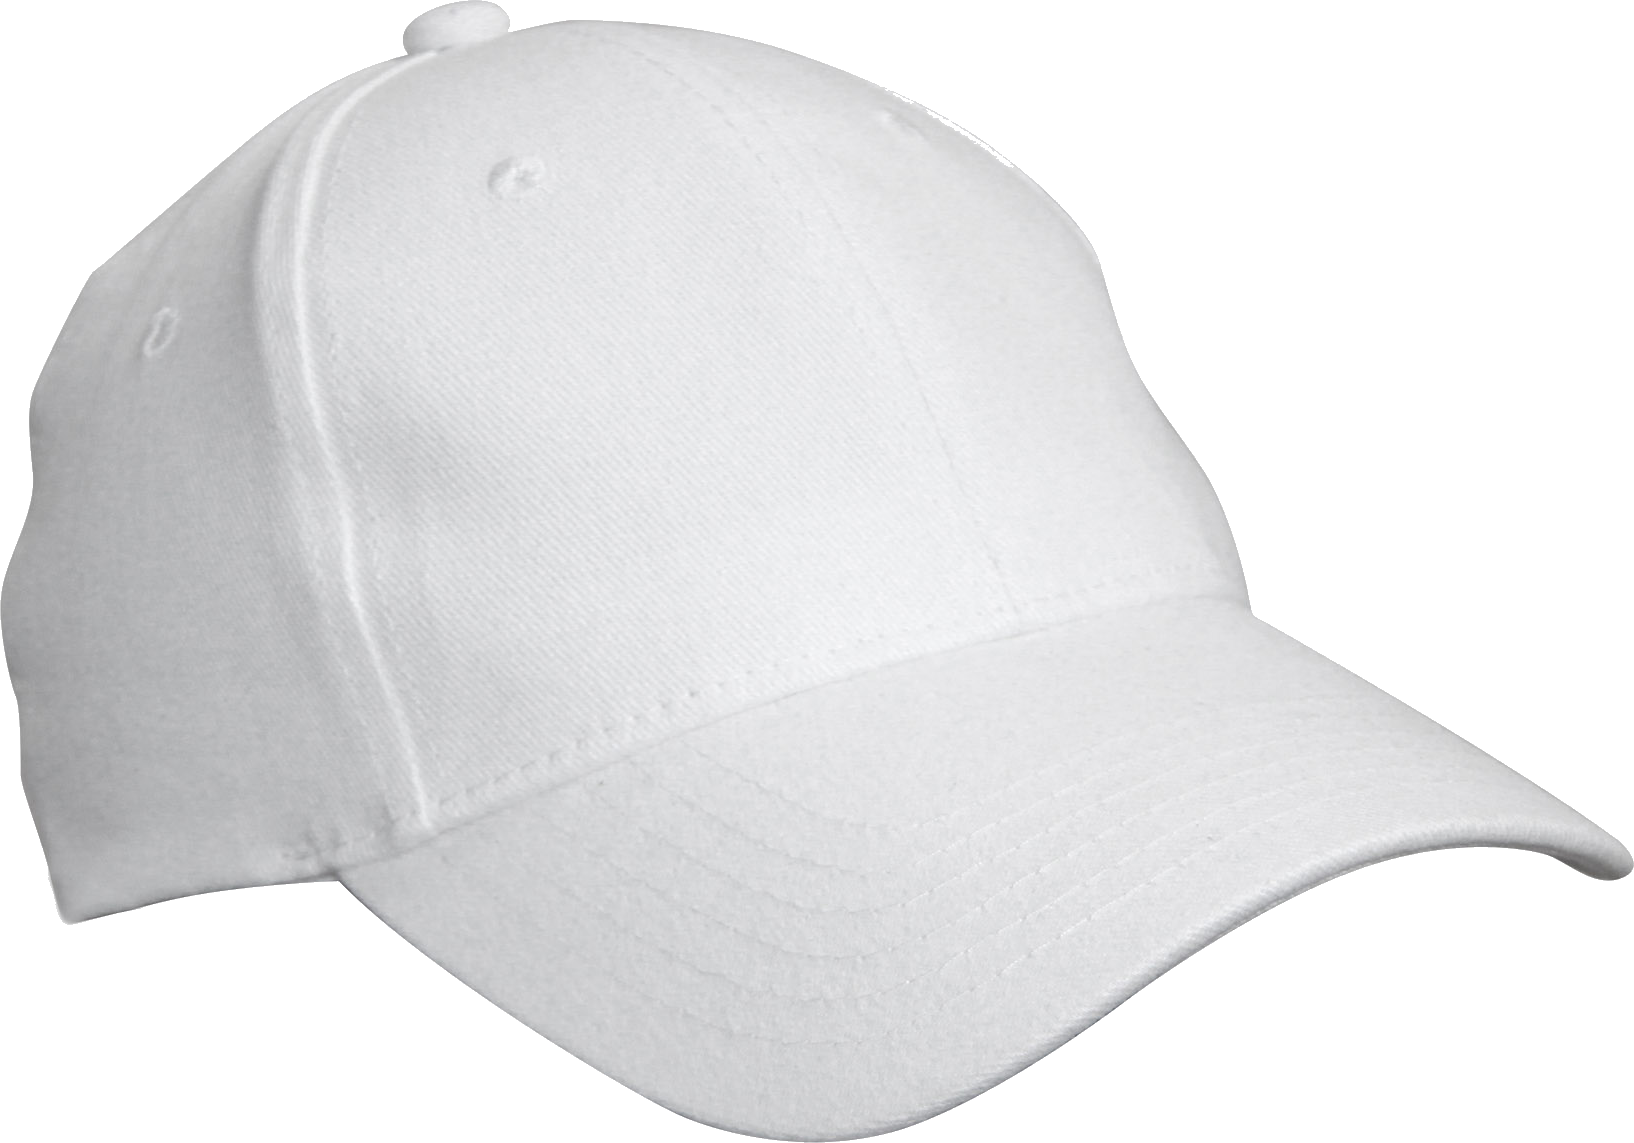 SImple white Cap PNG Image.